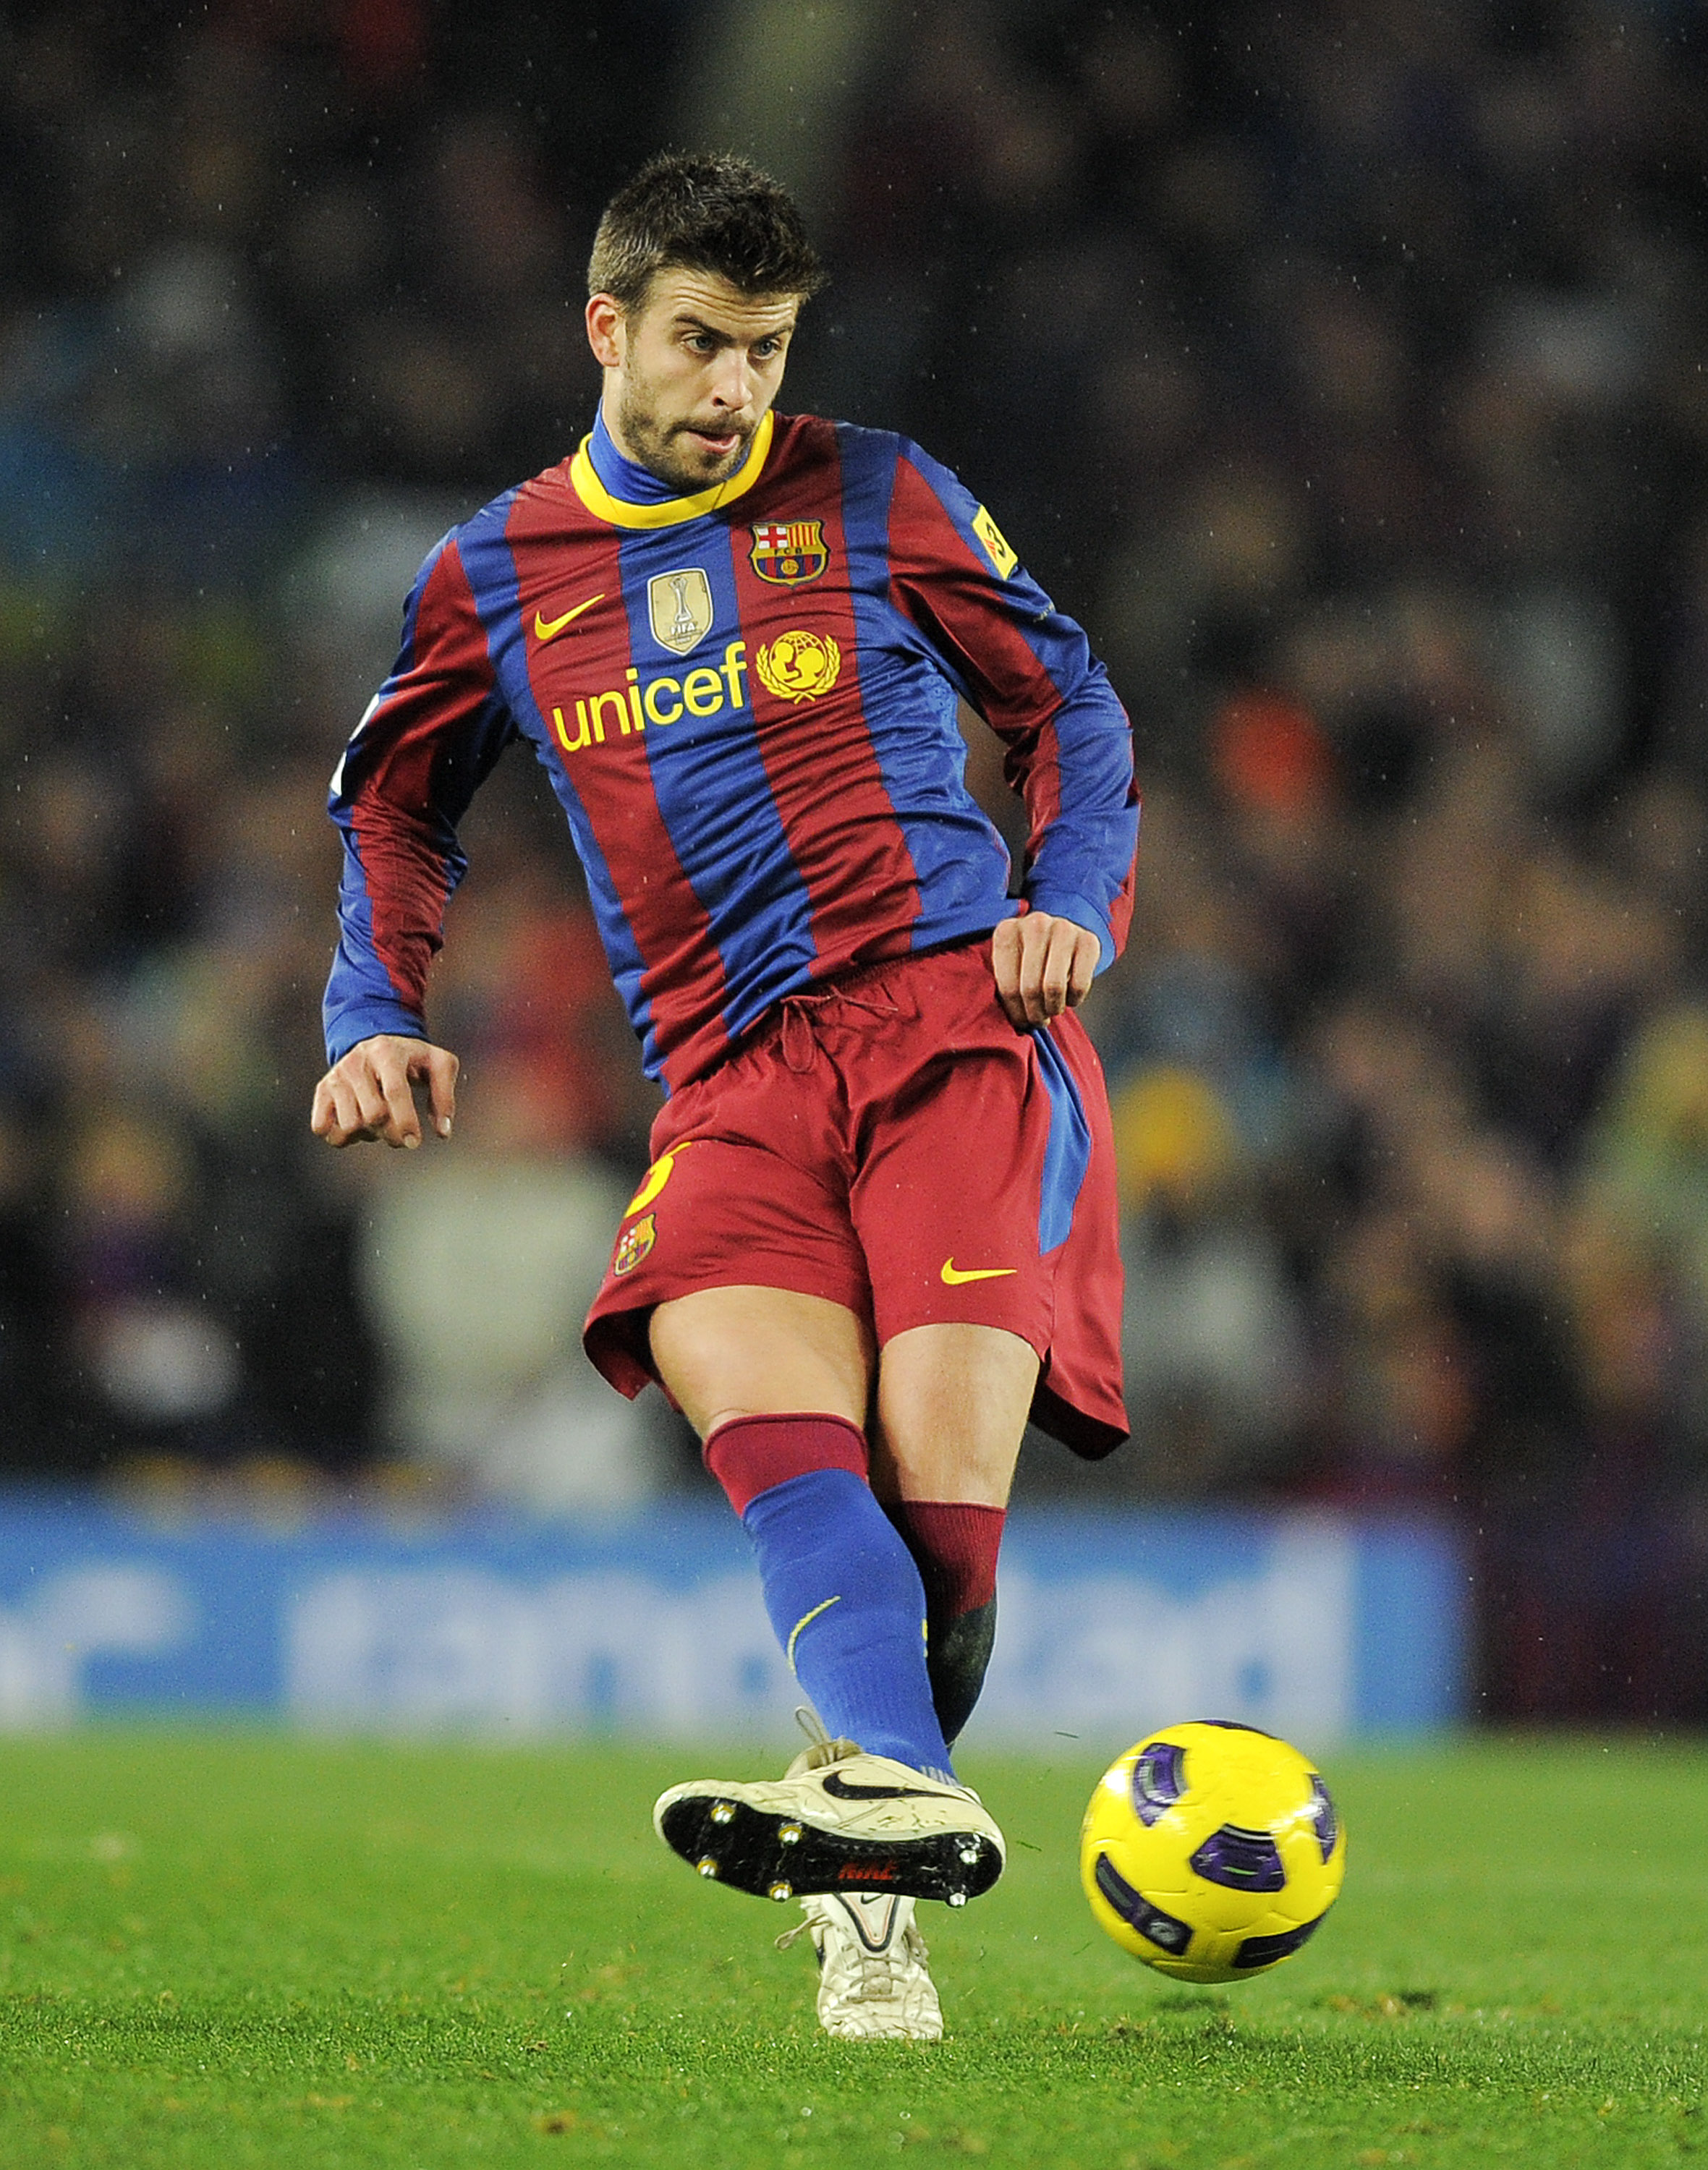 BARCELONA, SPAIN - NOVEMBER 29:  Gerard Pique of Barcelona in action during the La Liga match between Barcelona and Real Madrid at the Camp Nou Stadium on November 29, 2010 in Barcelona, Spain.  Barcelona won the match 5-0.  (Photo by David Ramos/Getty Im